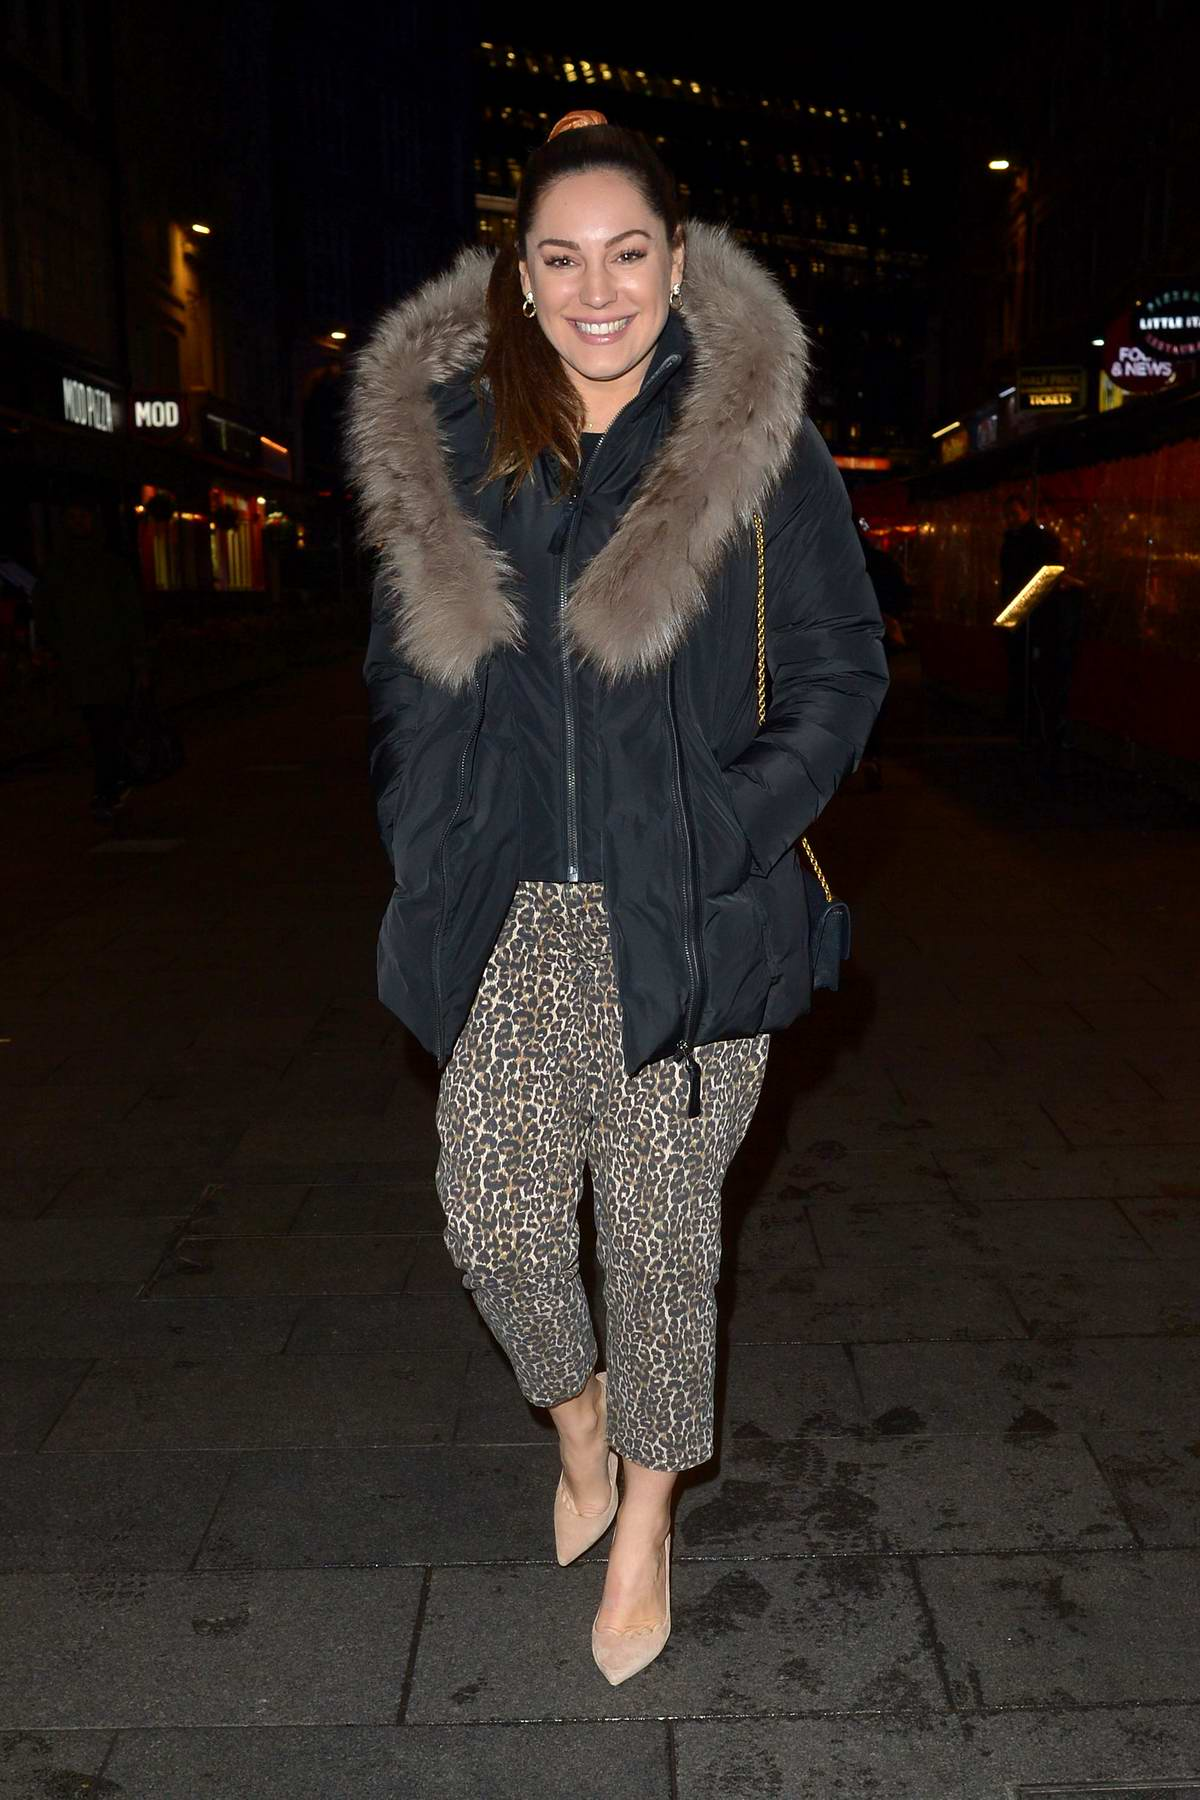 Kelly Brook wears a smile with a fur-lined jacket and leopard print pants as she leaves Global Radio in London, UK